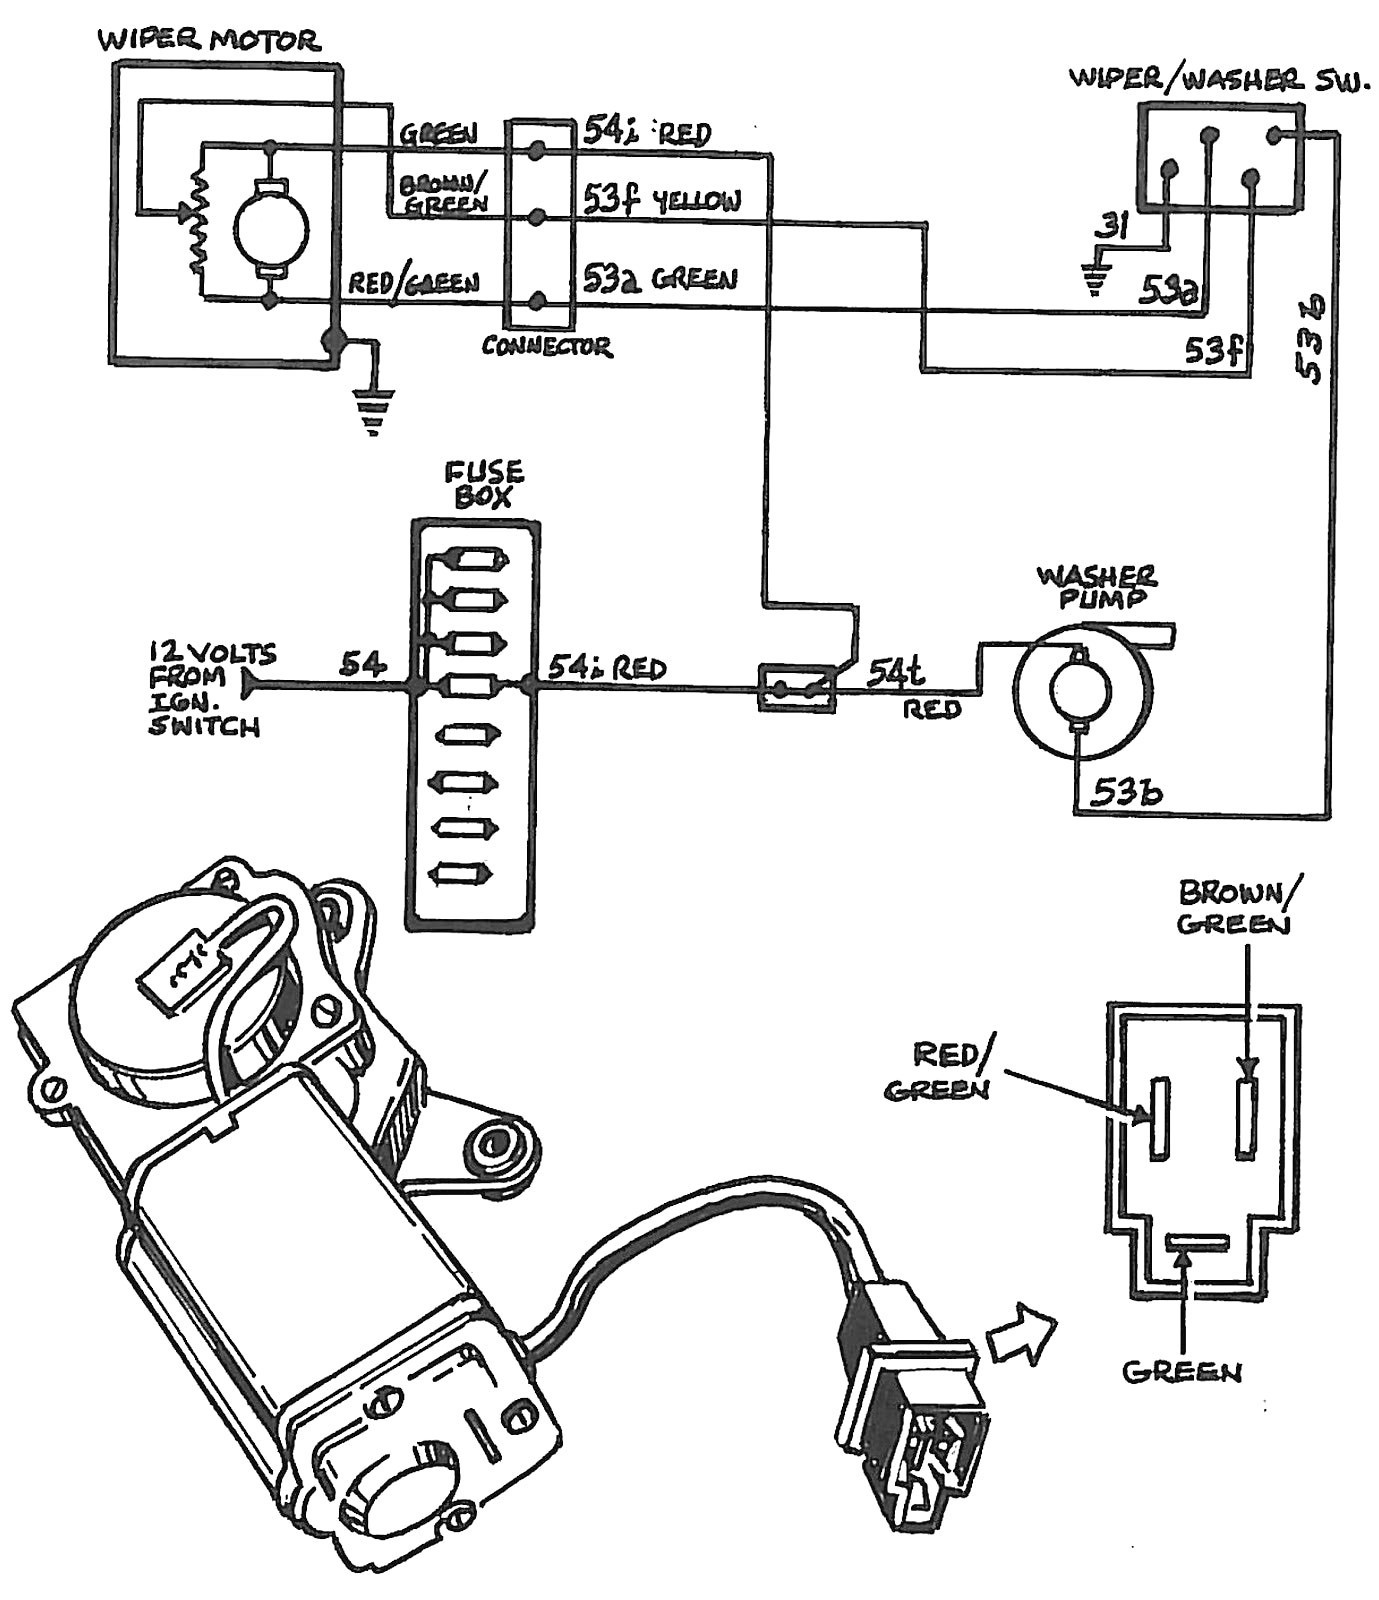 Windshield wiper motor schematic symbol wire center